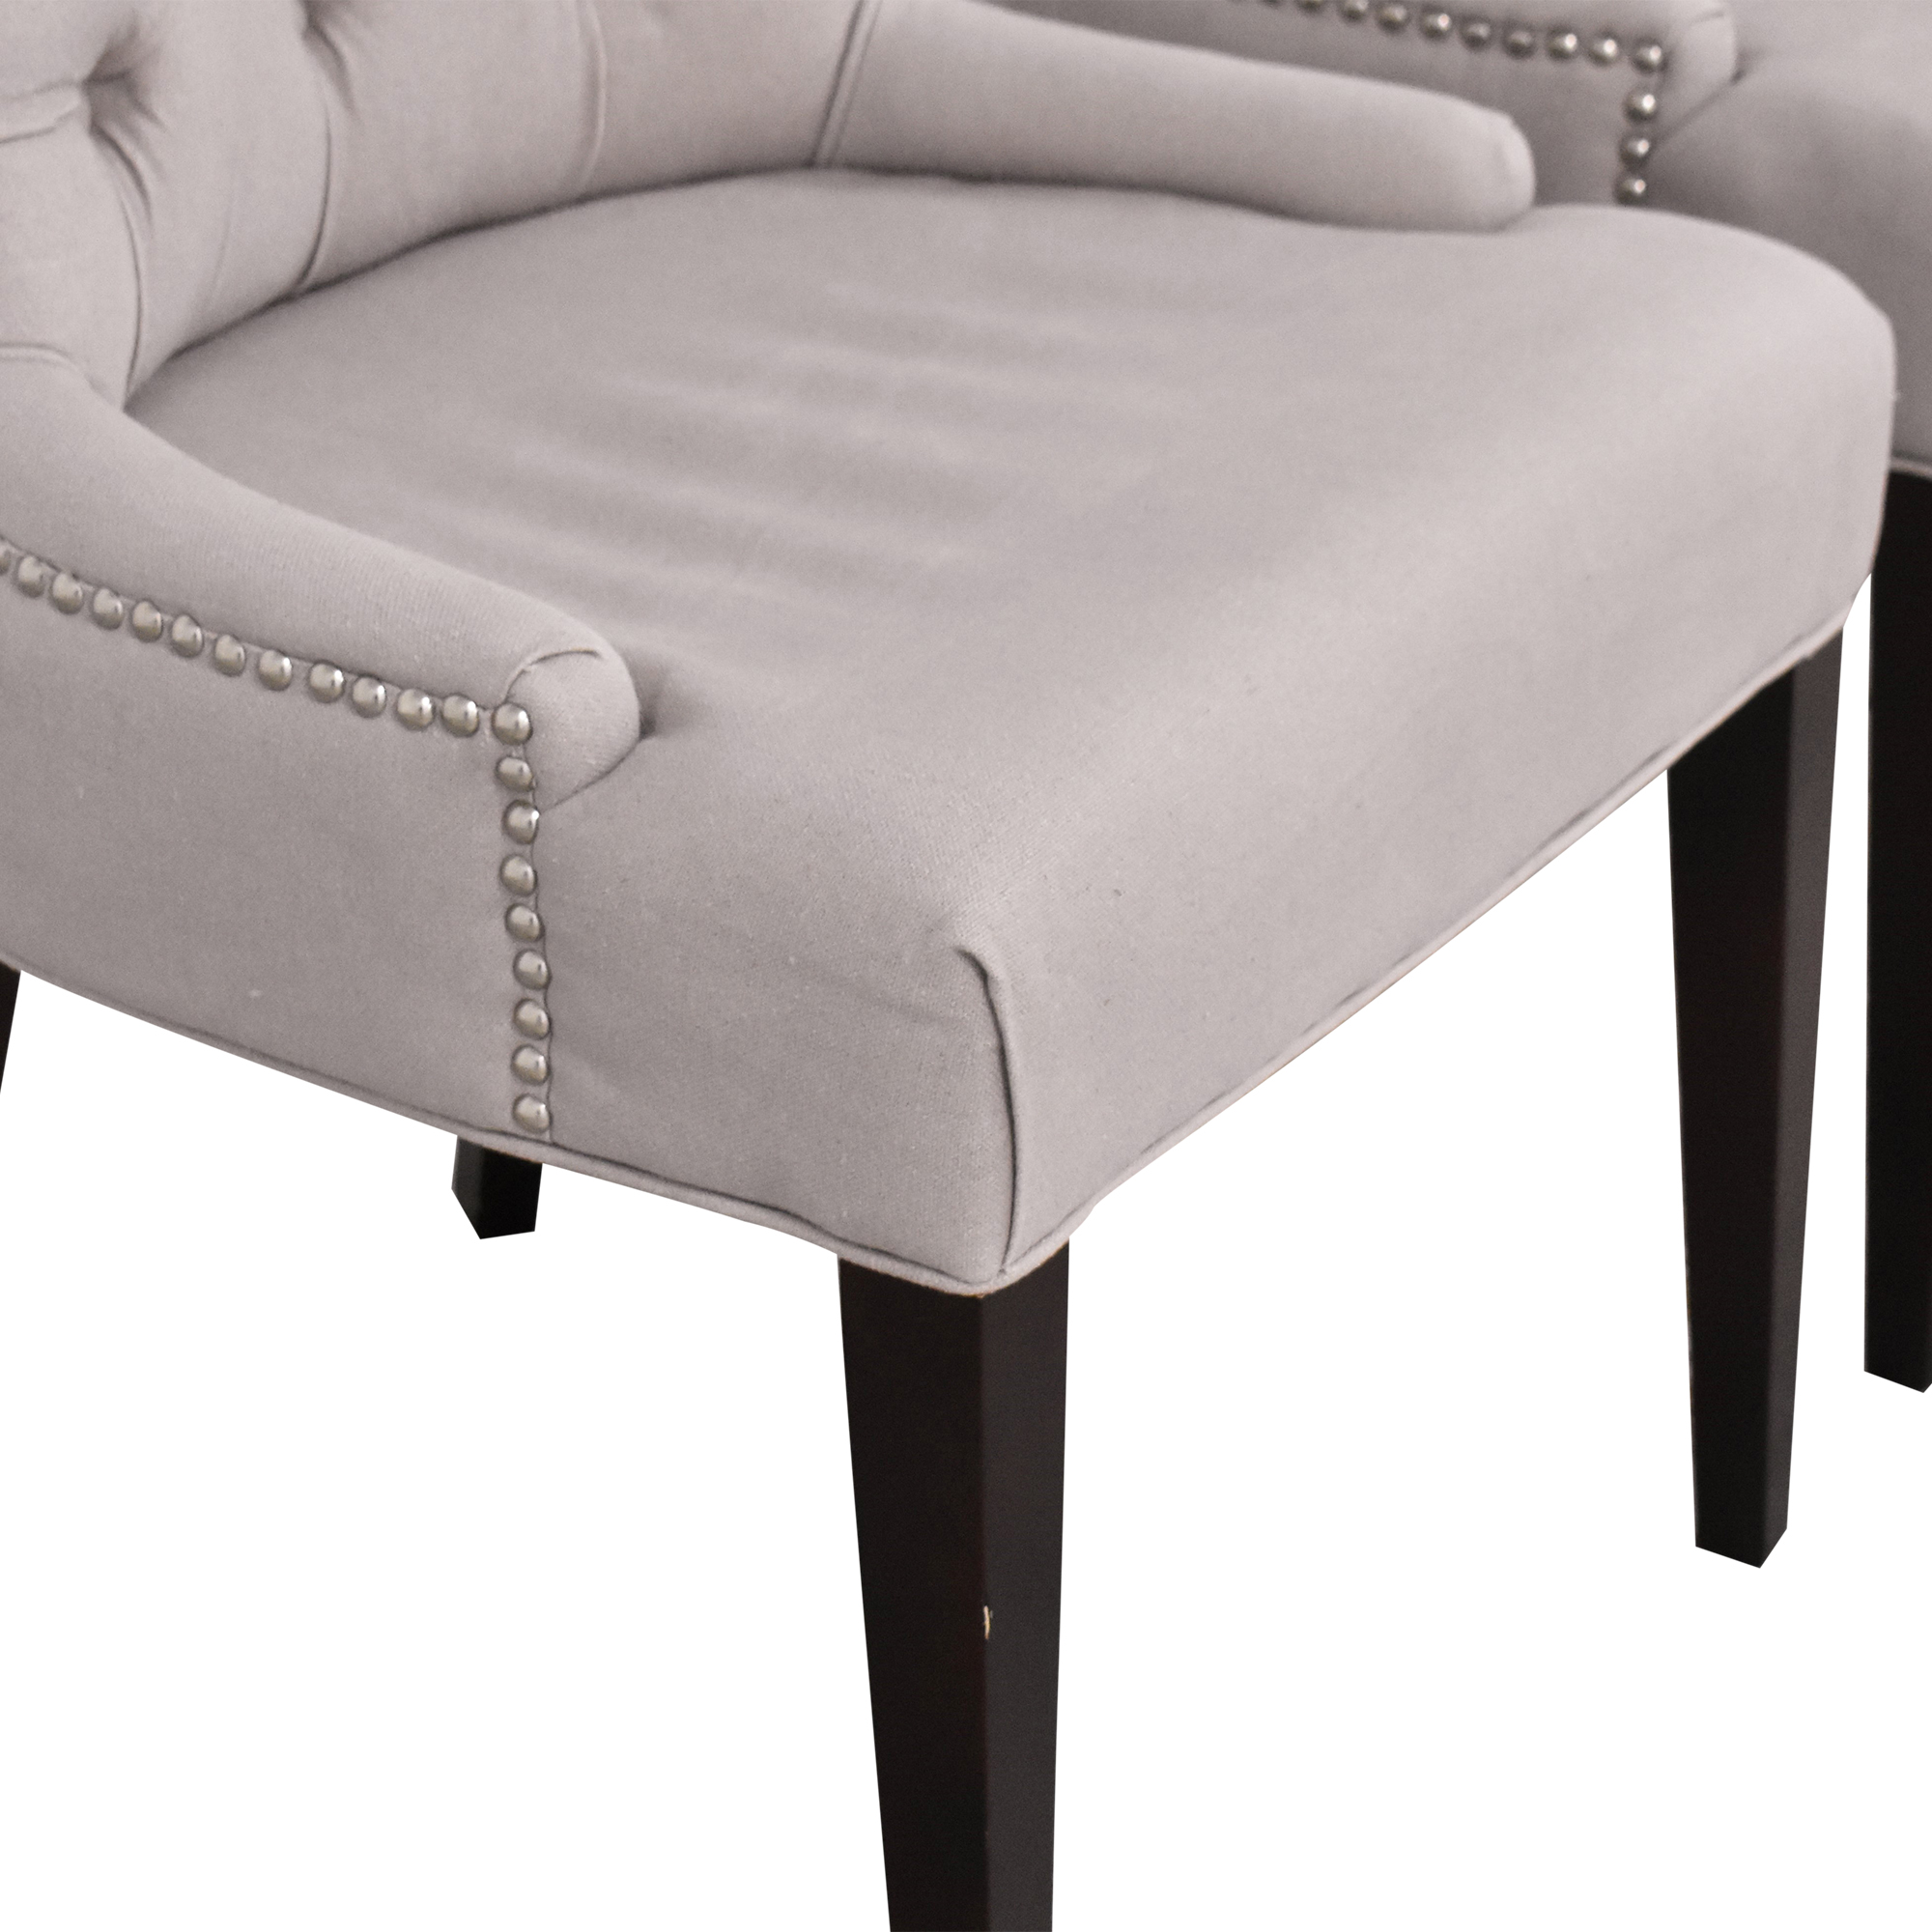 Safavieh Nimes Tufted Dining Chairs / Dining Chairs